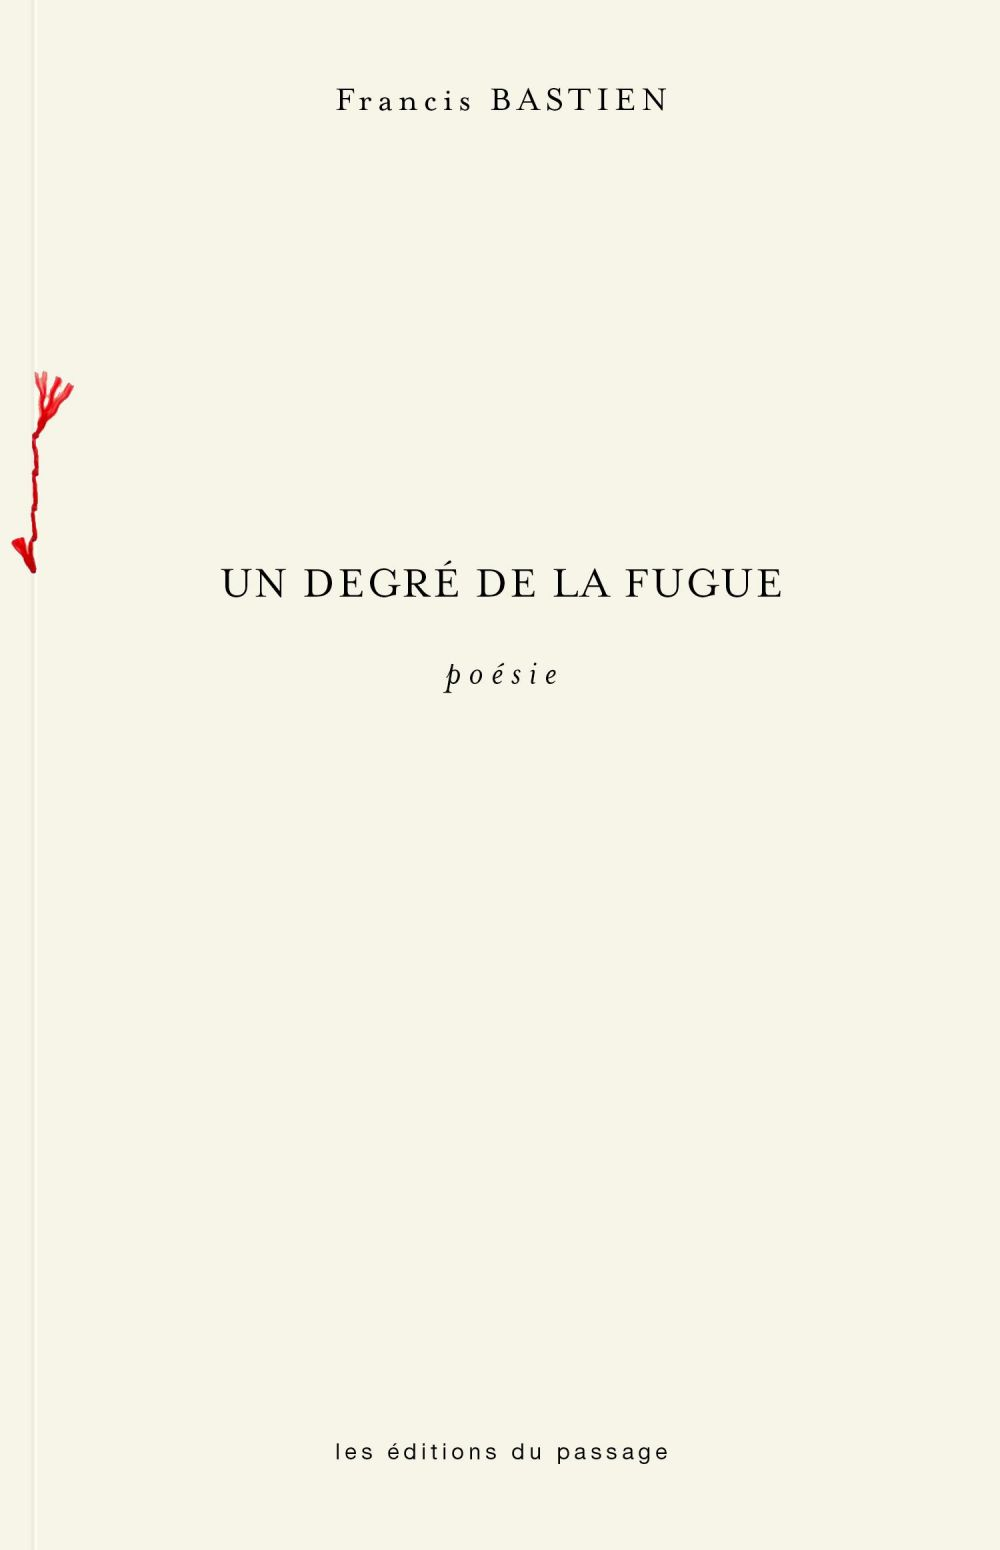 Un degré de la fugue